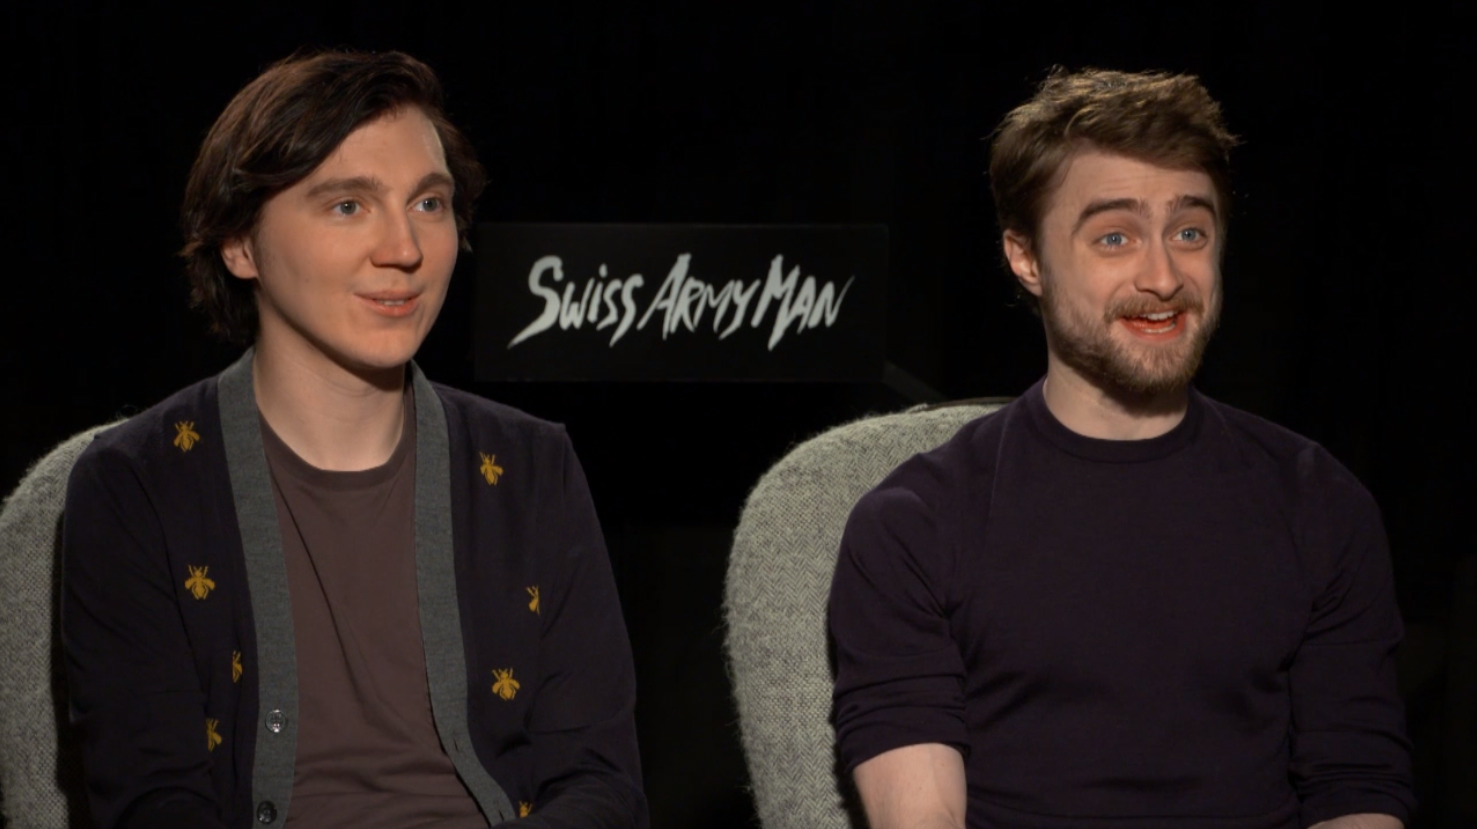 Daniel Radcliffe and Paul Dano On Science And 'Swiss Army Man'